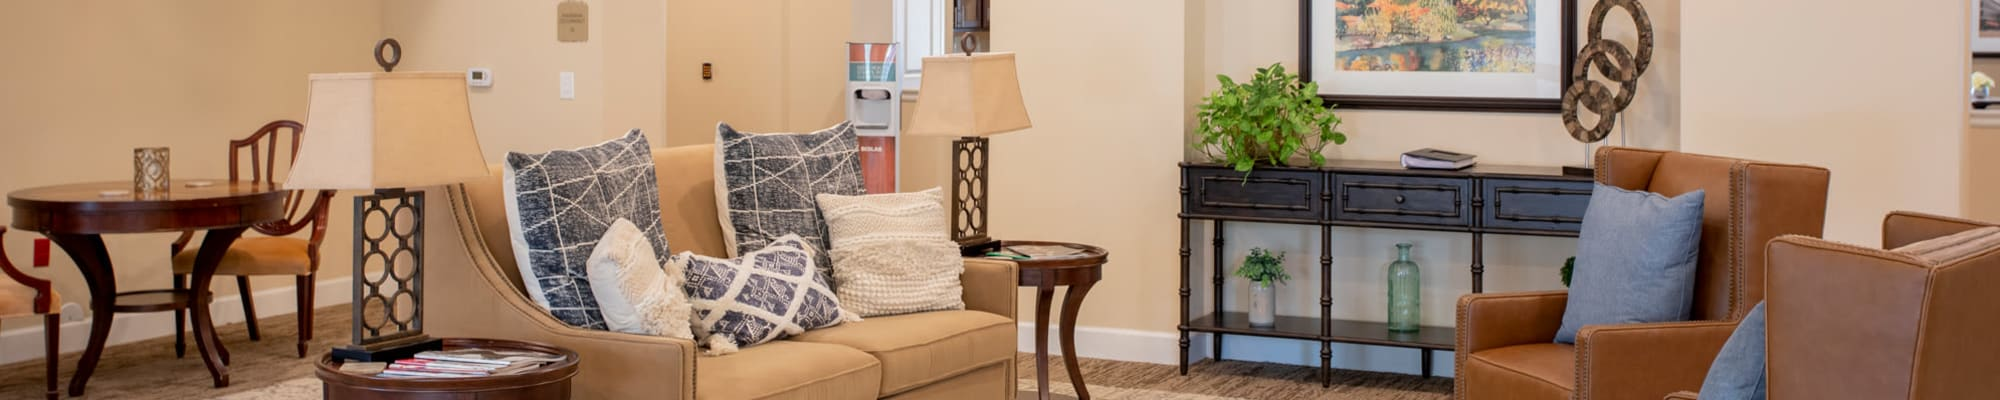 Living Options at The Harmony Collection at Columbia in Columbia, South Carolina